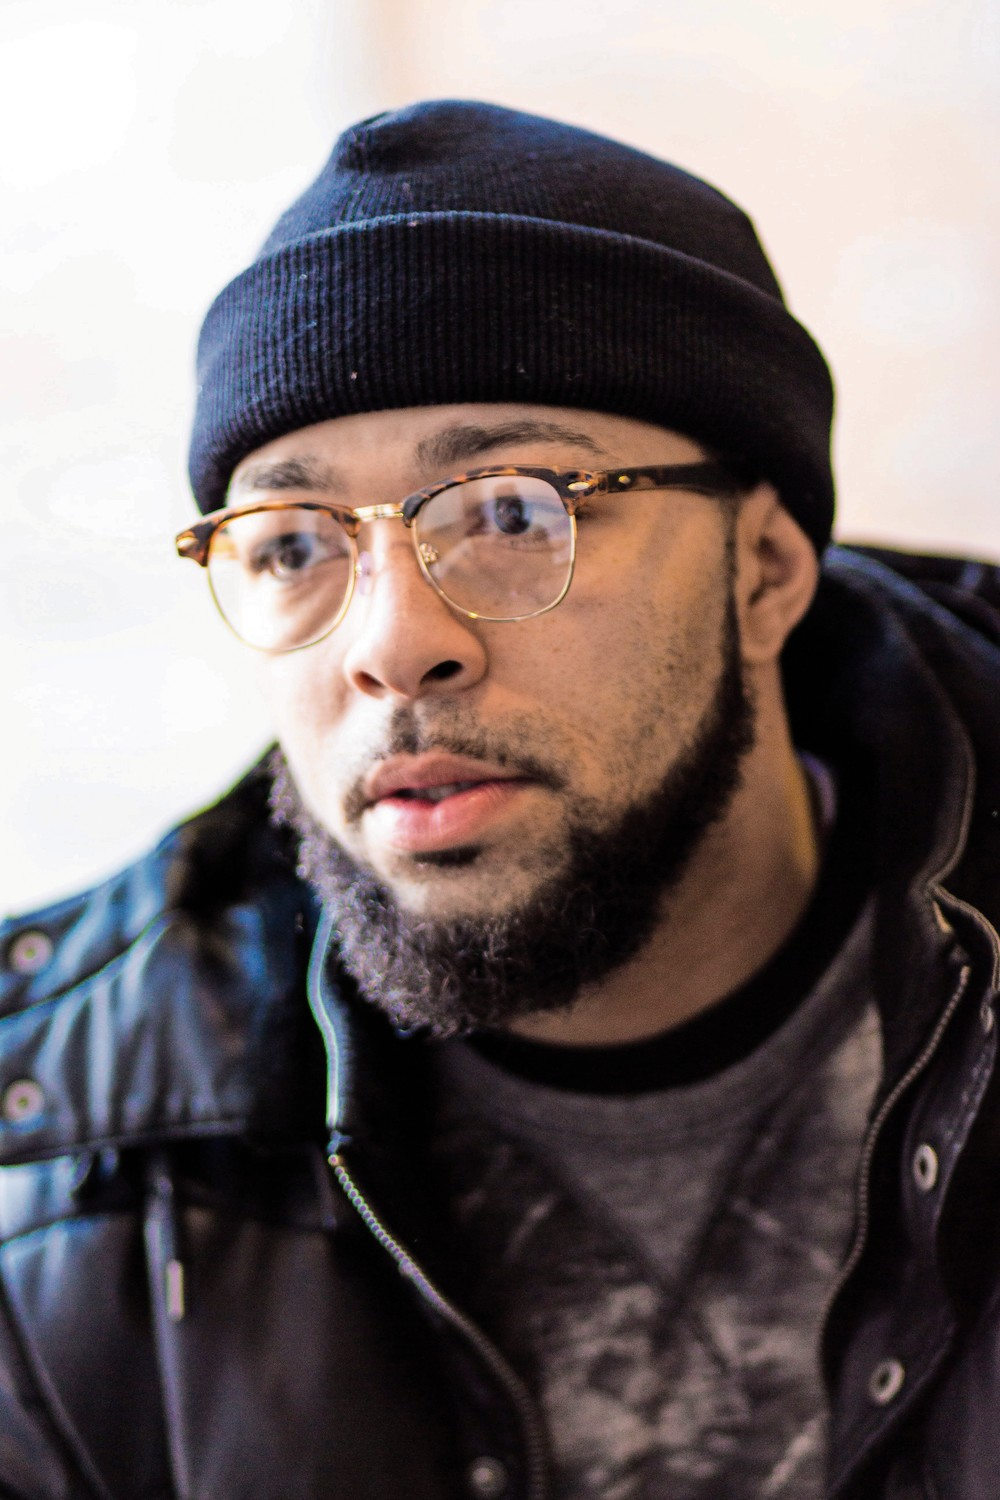 Born in the Bronx and raised between there and Harlem, Damian Stapleton was arrested for robbery and sent to Rikers Island to await trail in 2007. During his time at the city jail, Stapleton once witnessed the culture of violence that has prompted city officials to close Rikers within the next decade. He spoke on a panel about mass incarceration last month at Lehman College.